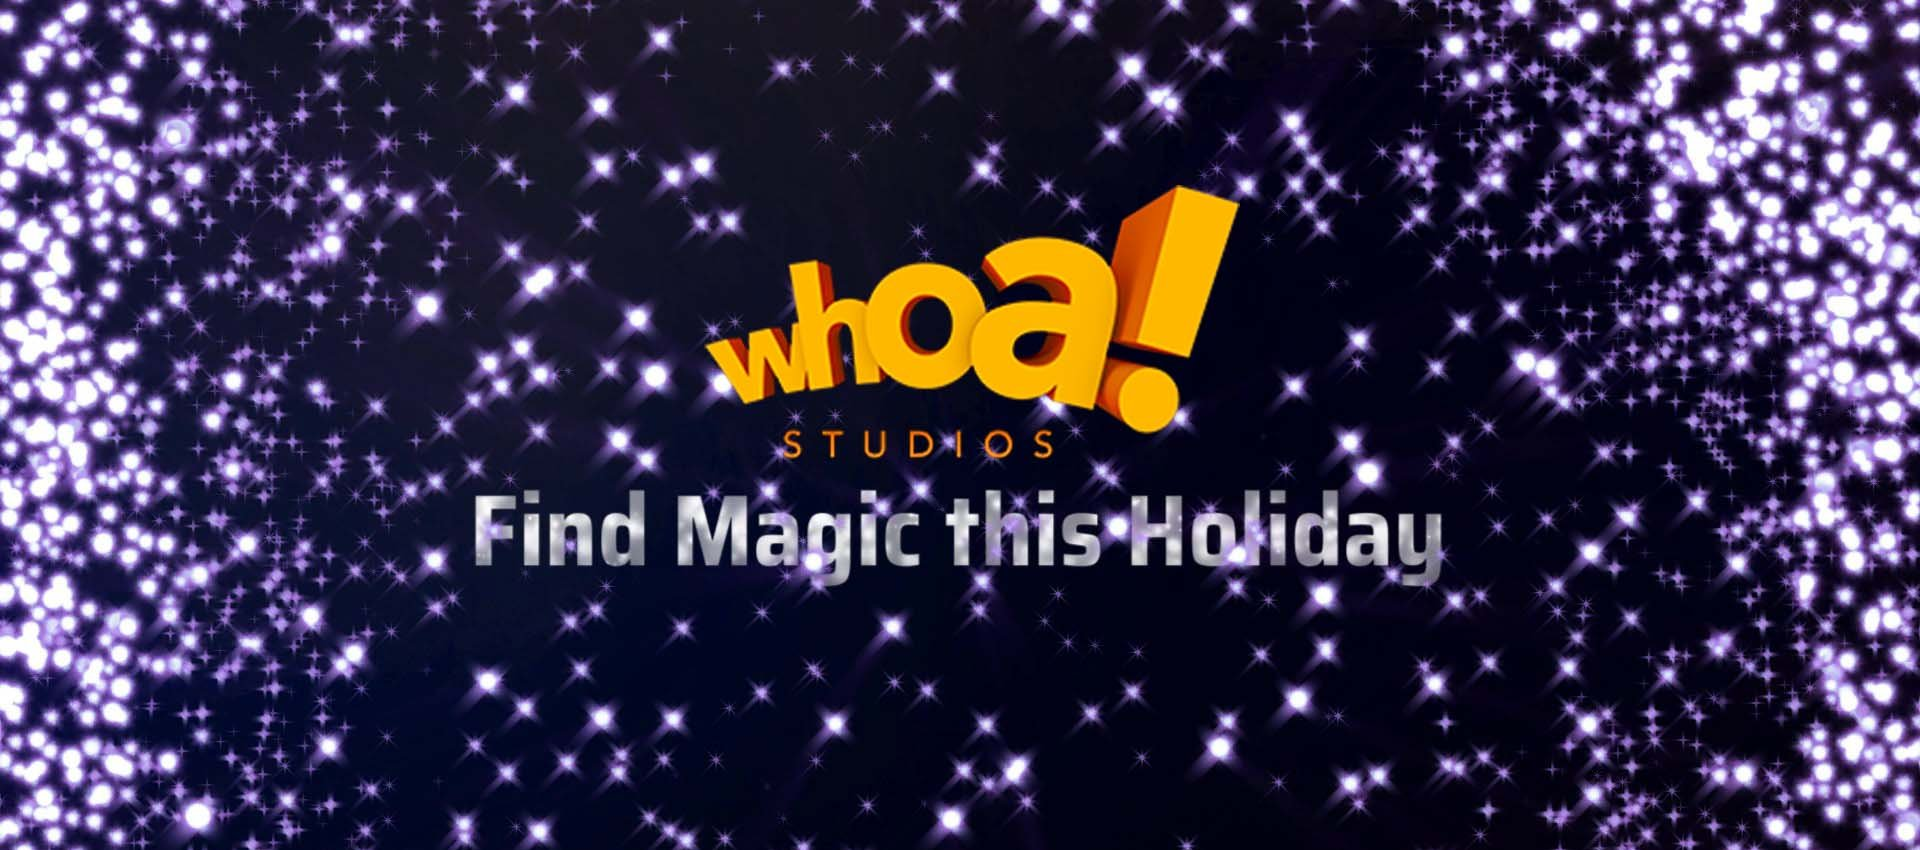 Magical Holiday Fun at Whoa!